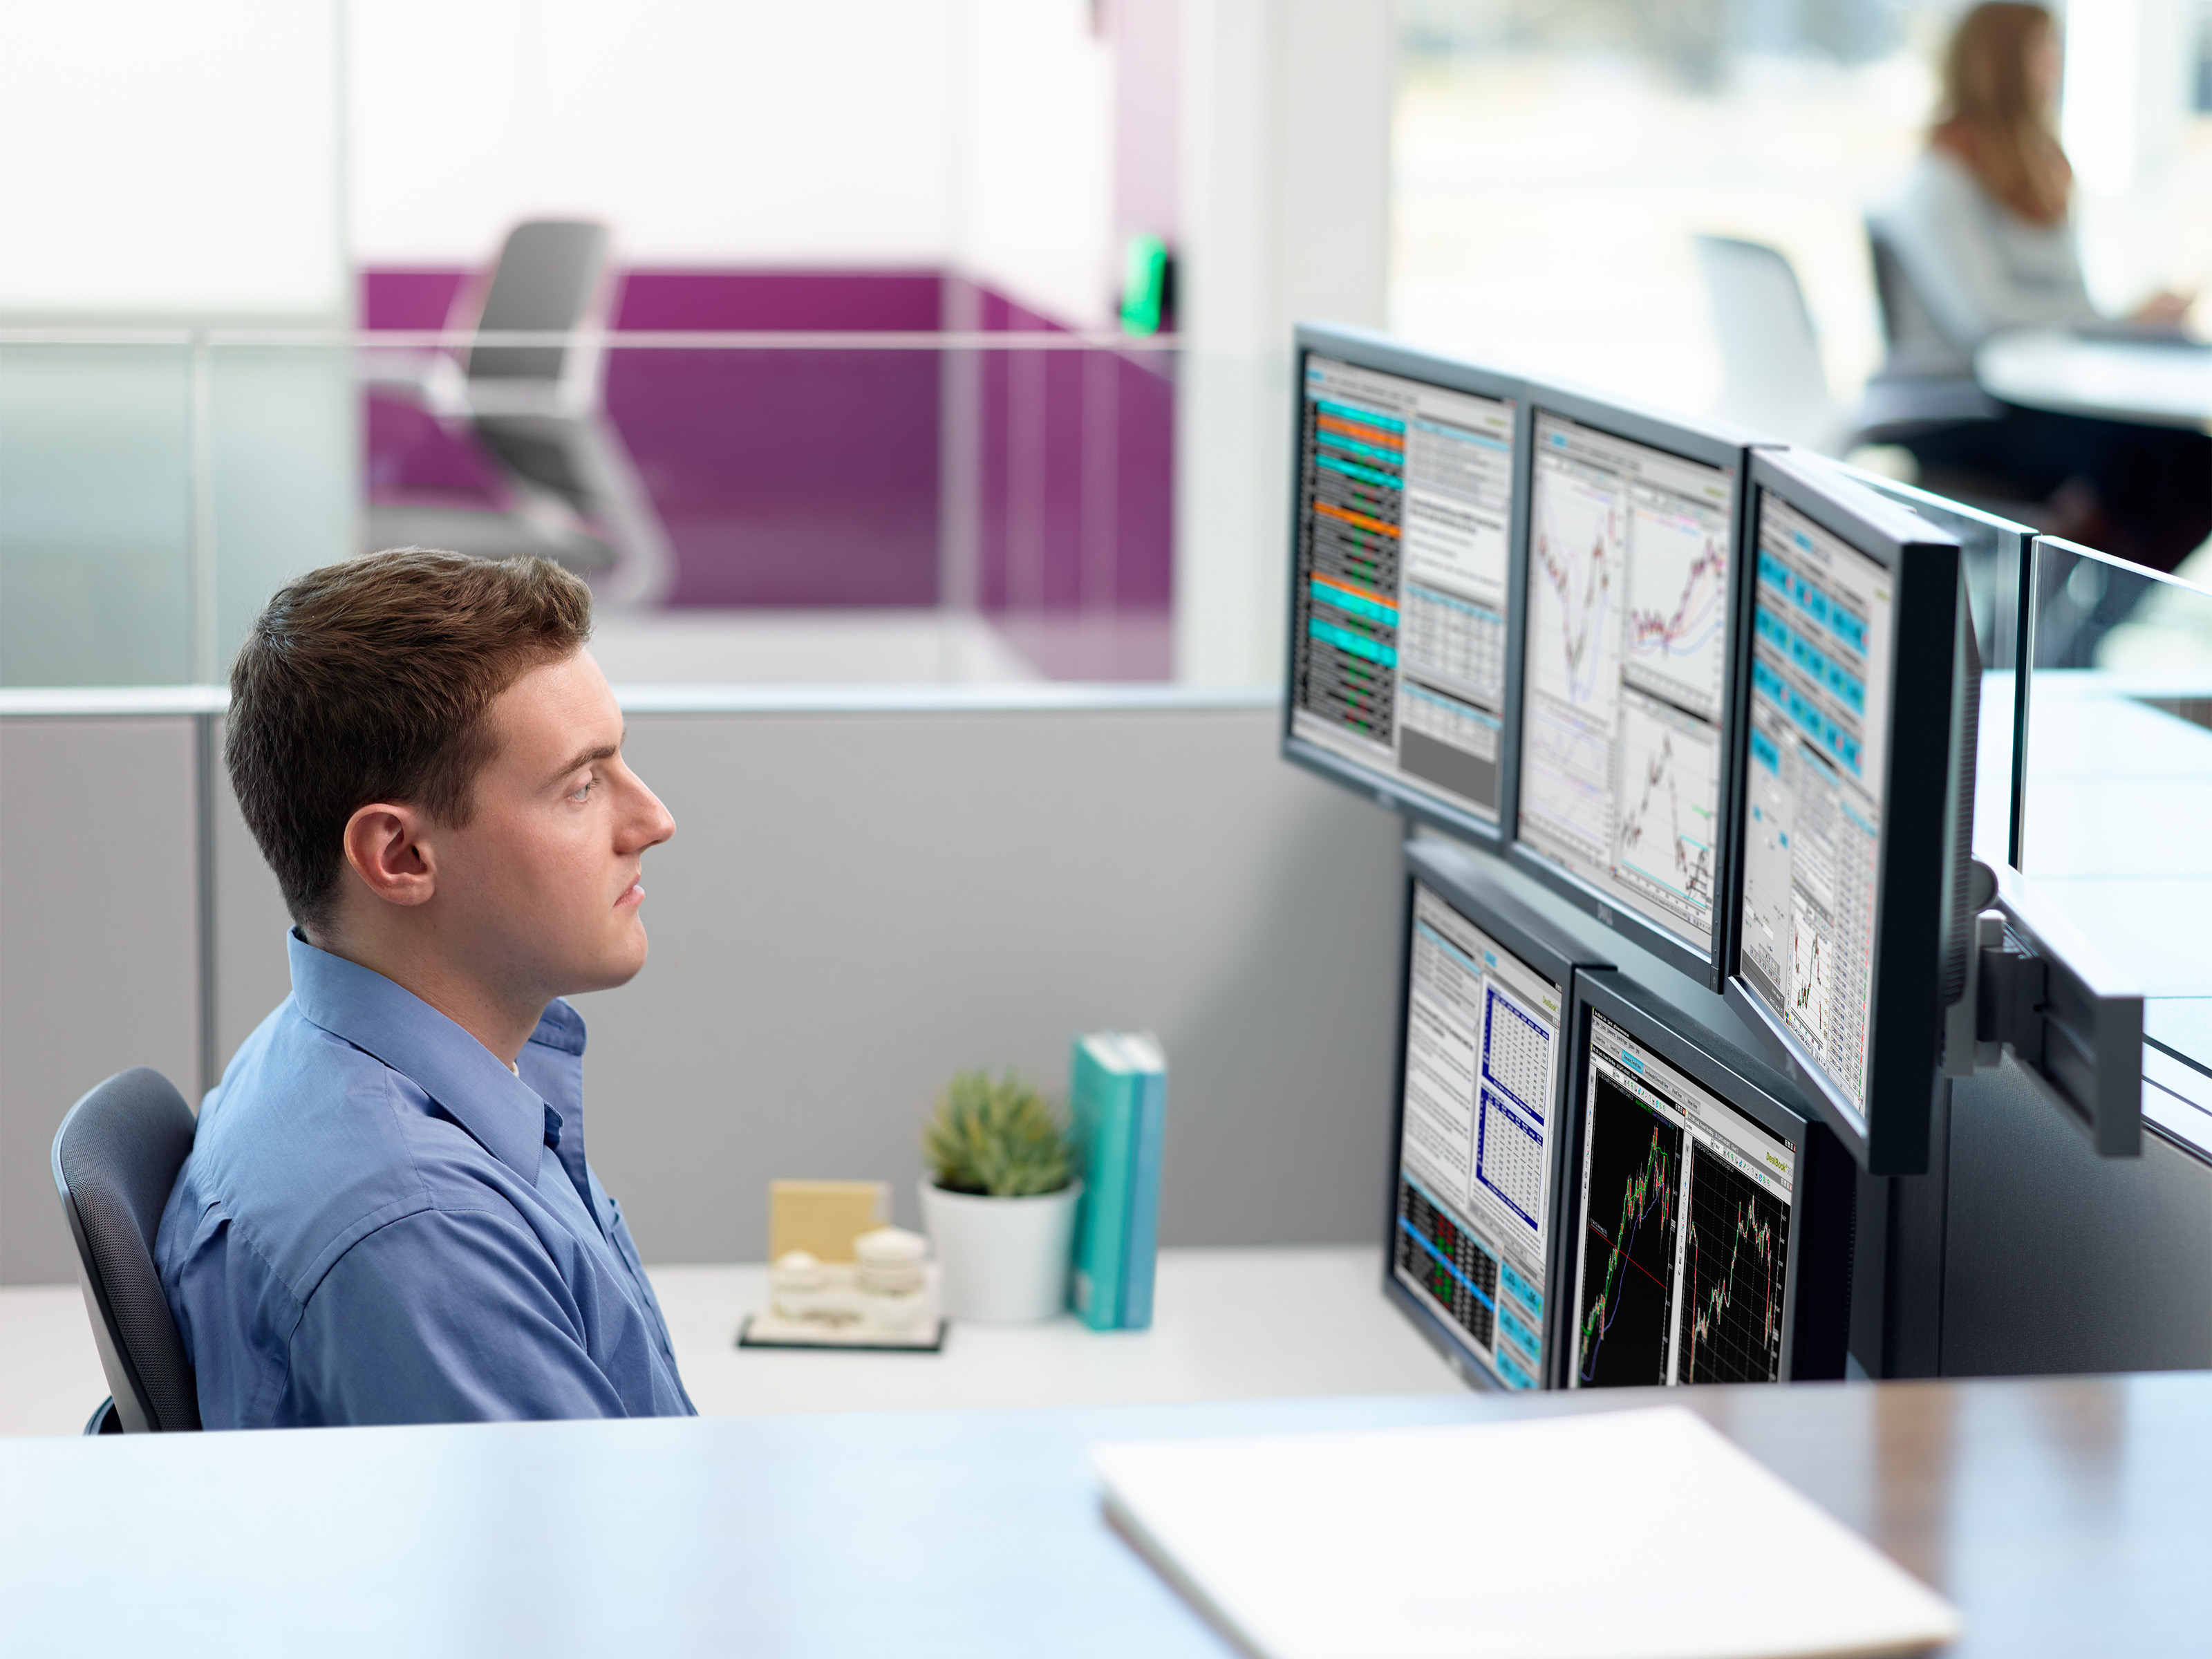 - How Multiple Monitors Affect Wellbeing - Steelcase